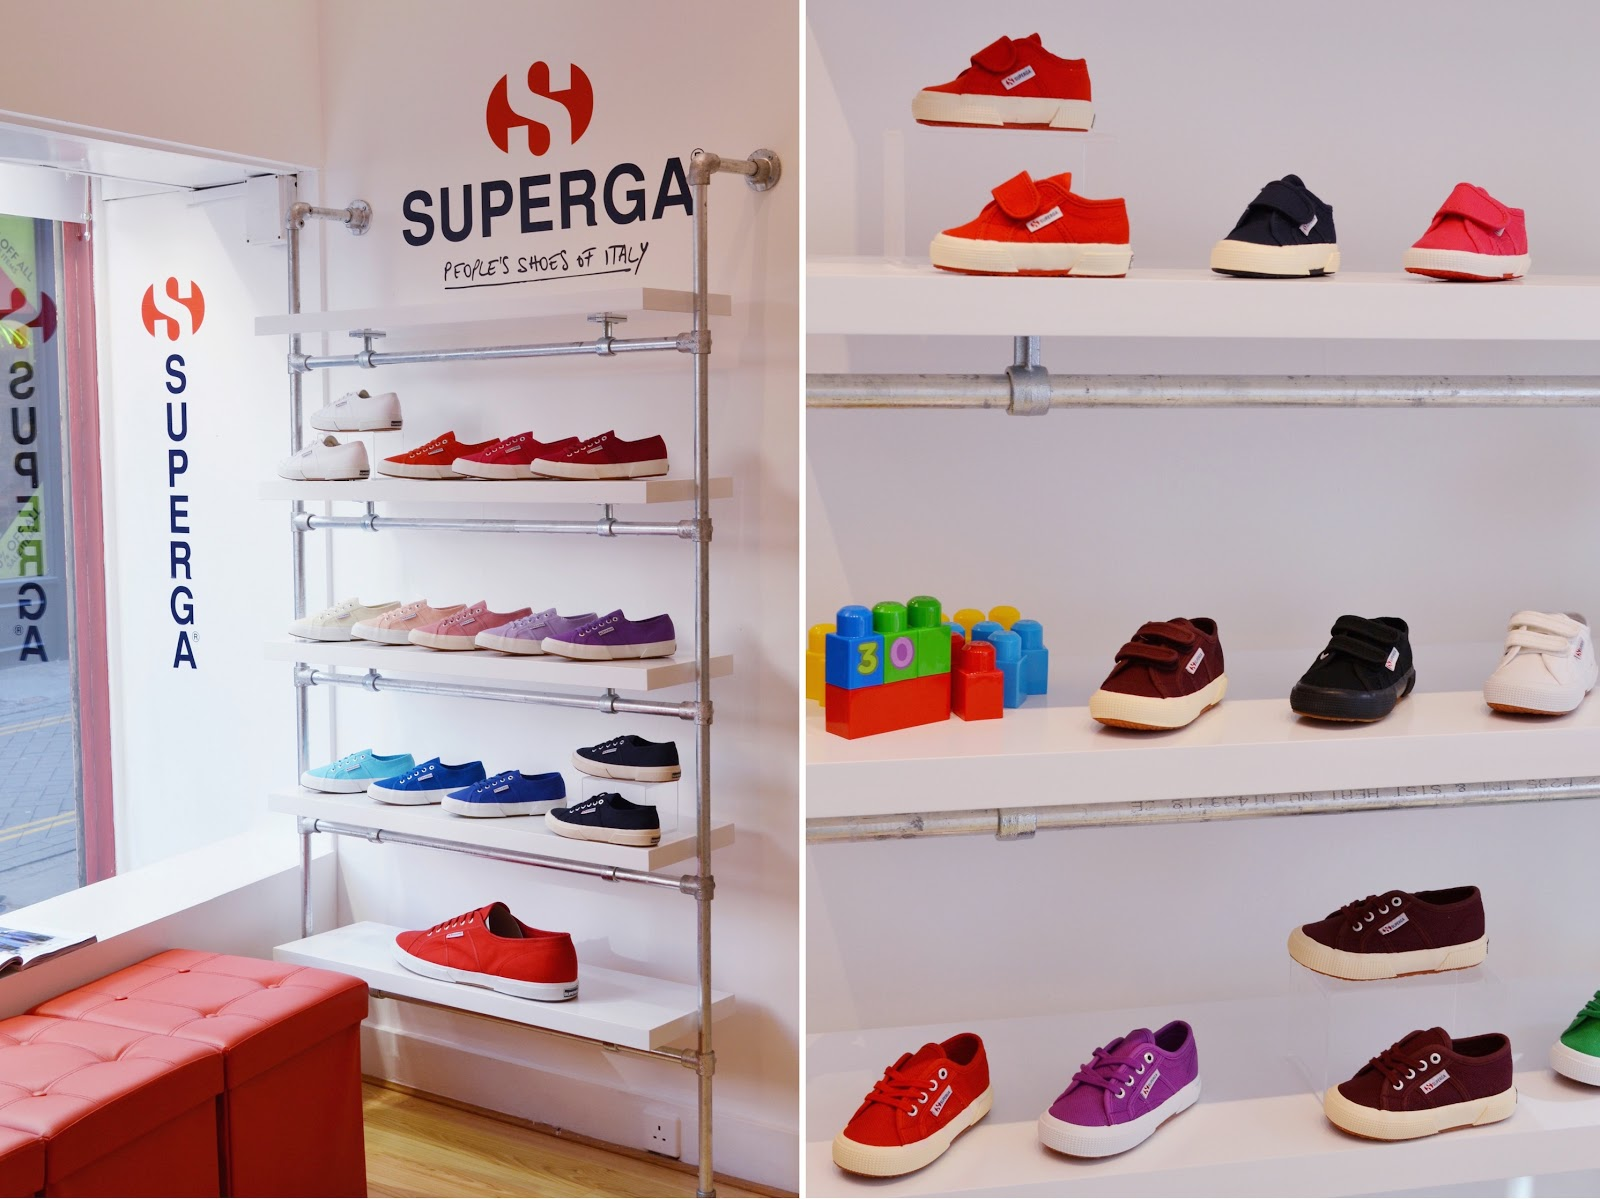 Superga Guildford market street